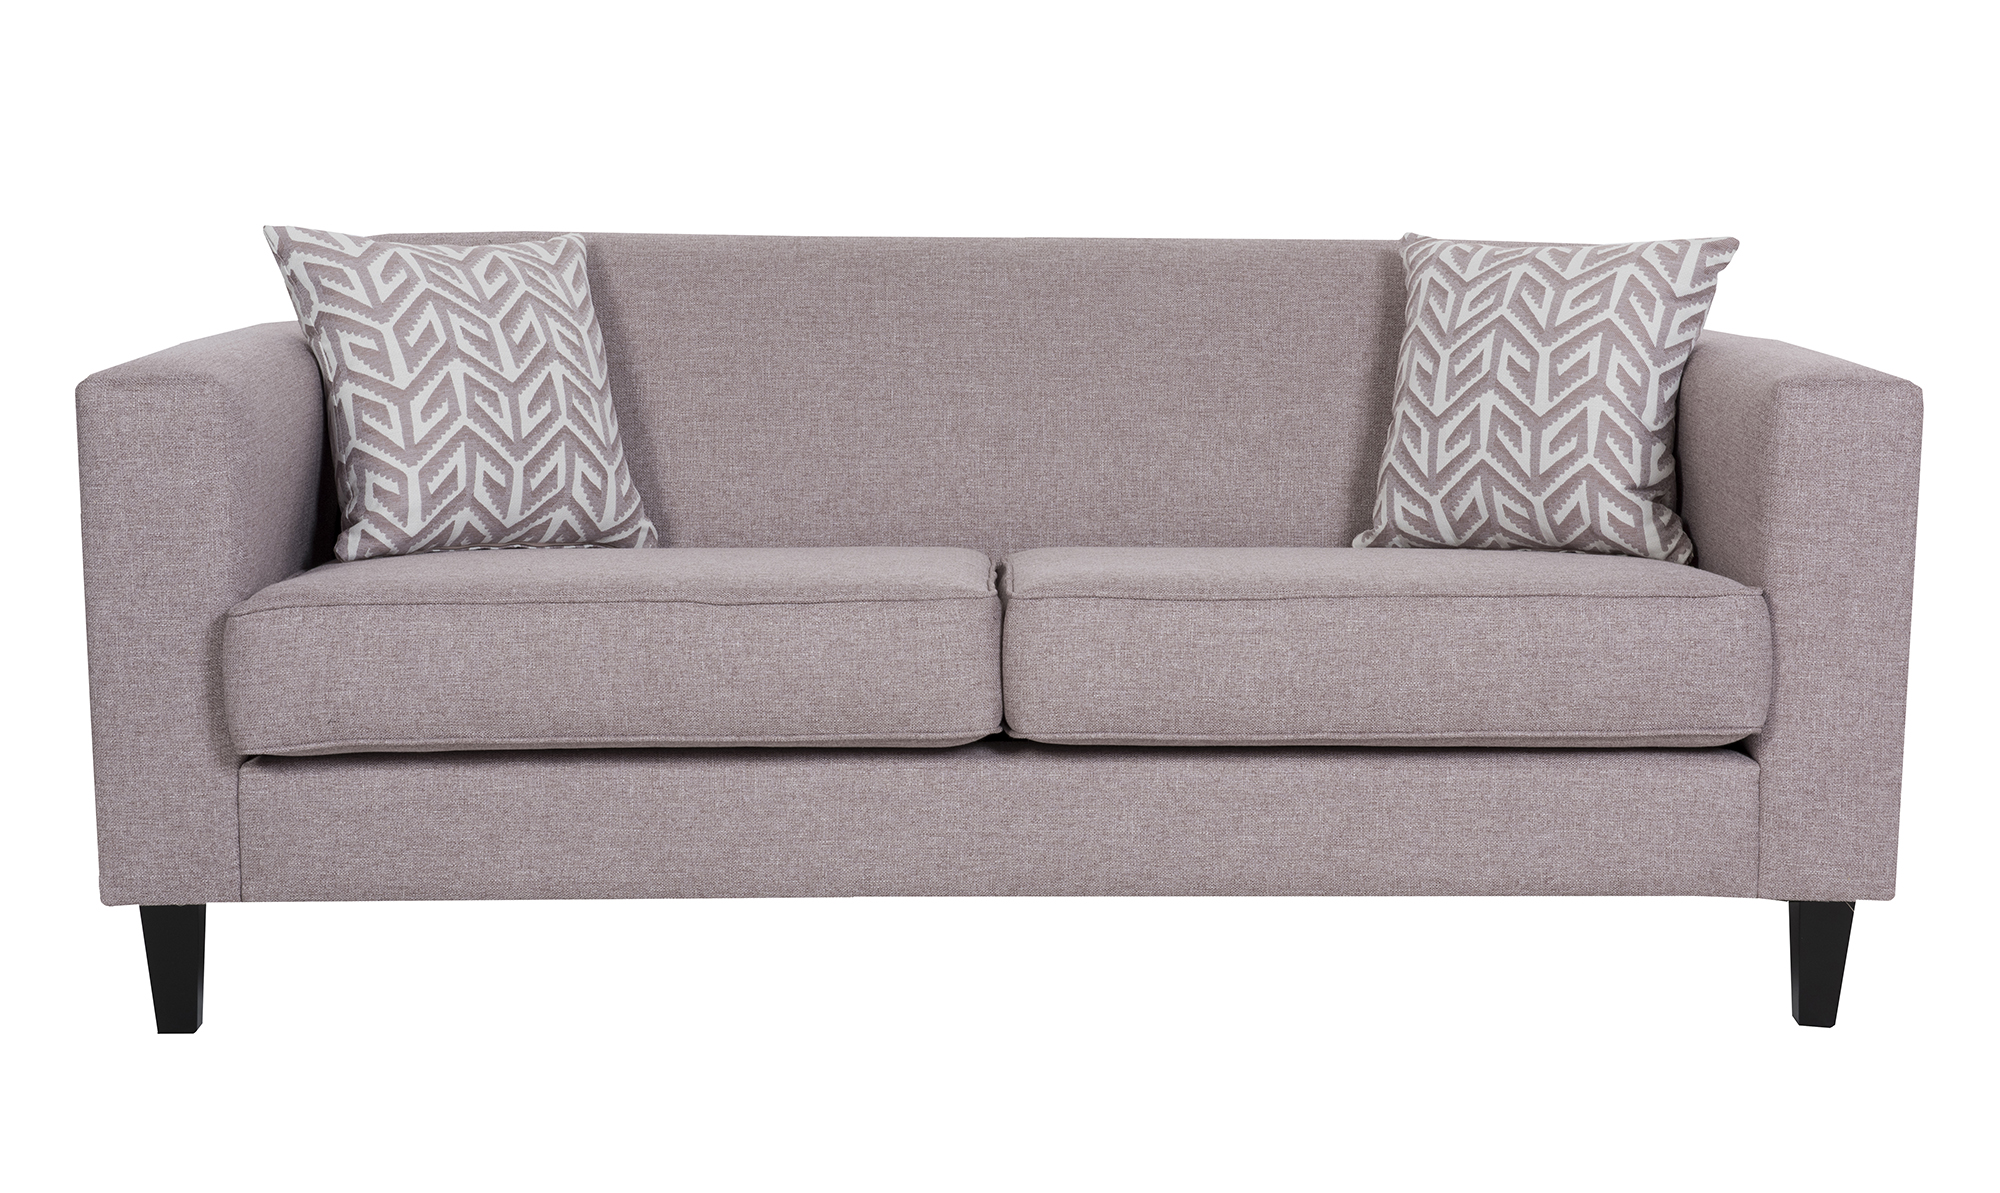 furniture lounge gray